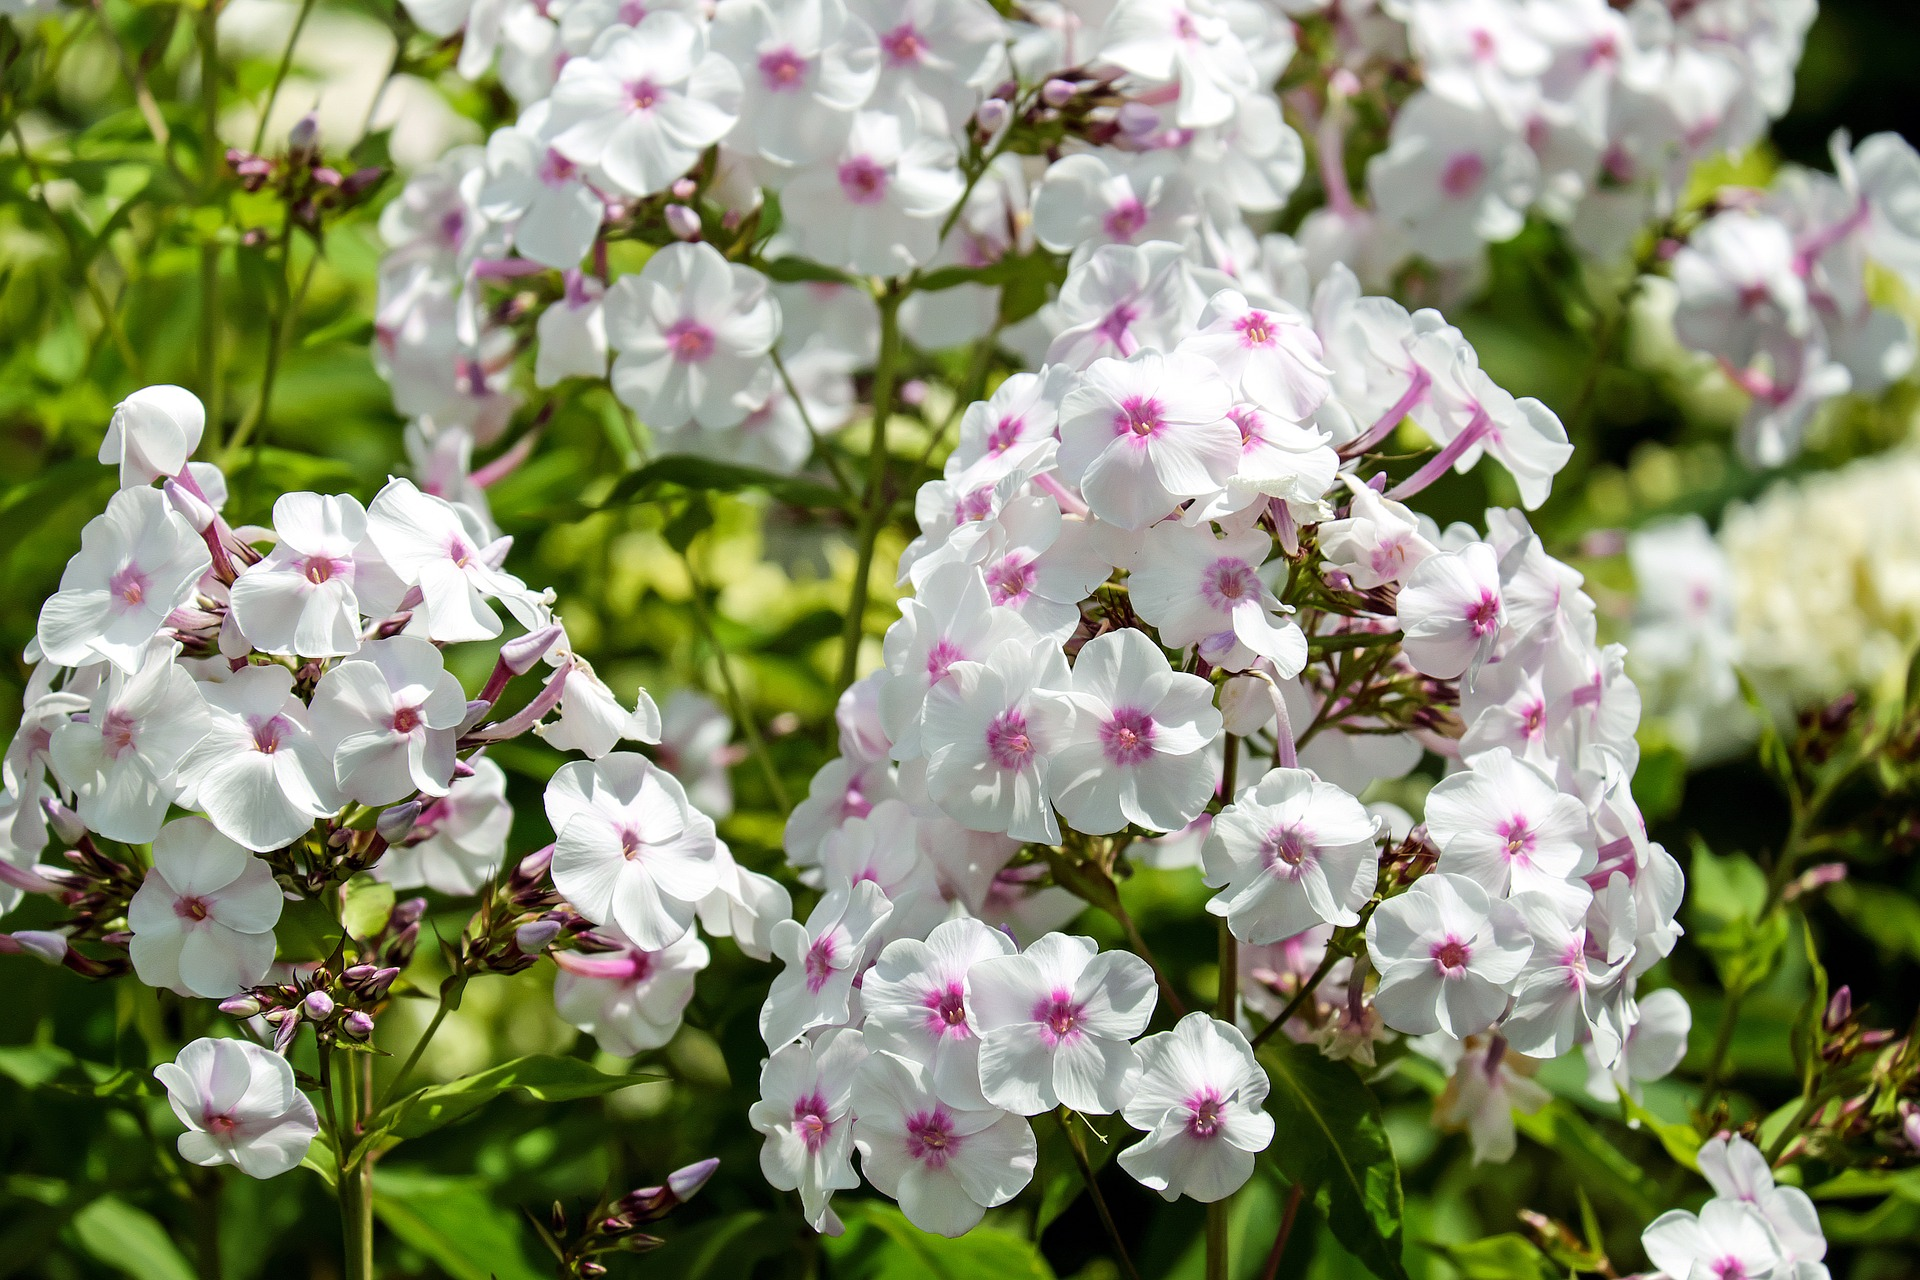 Phlox Planting Growing And Caring For Phlox The Old Farmers